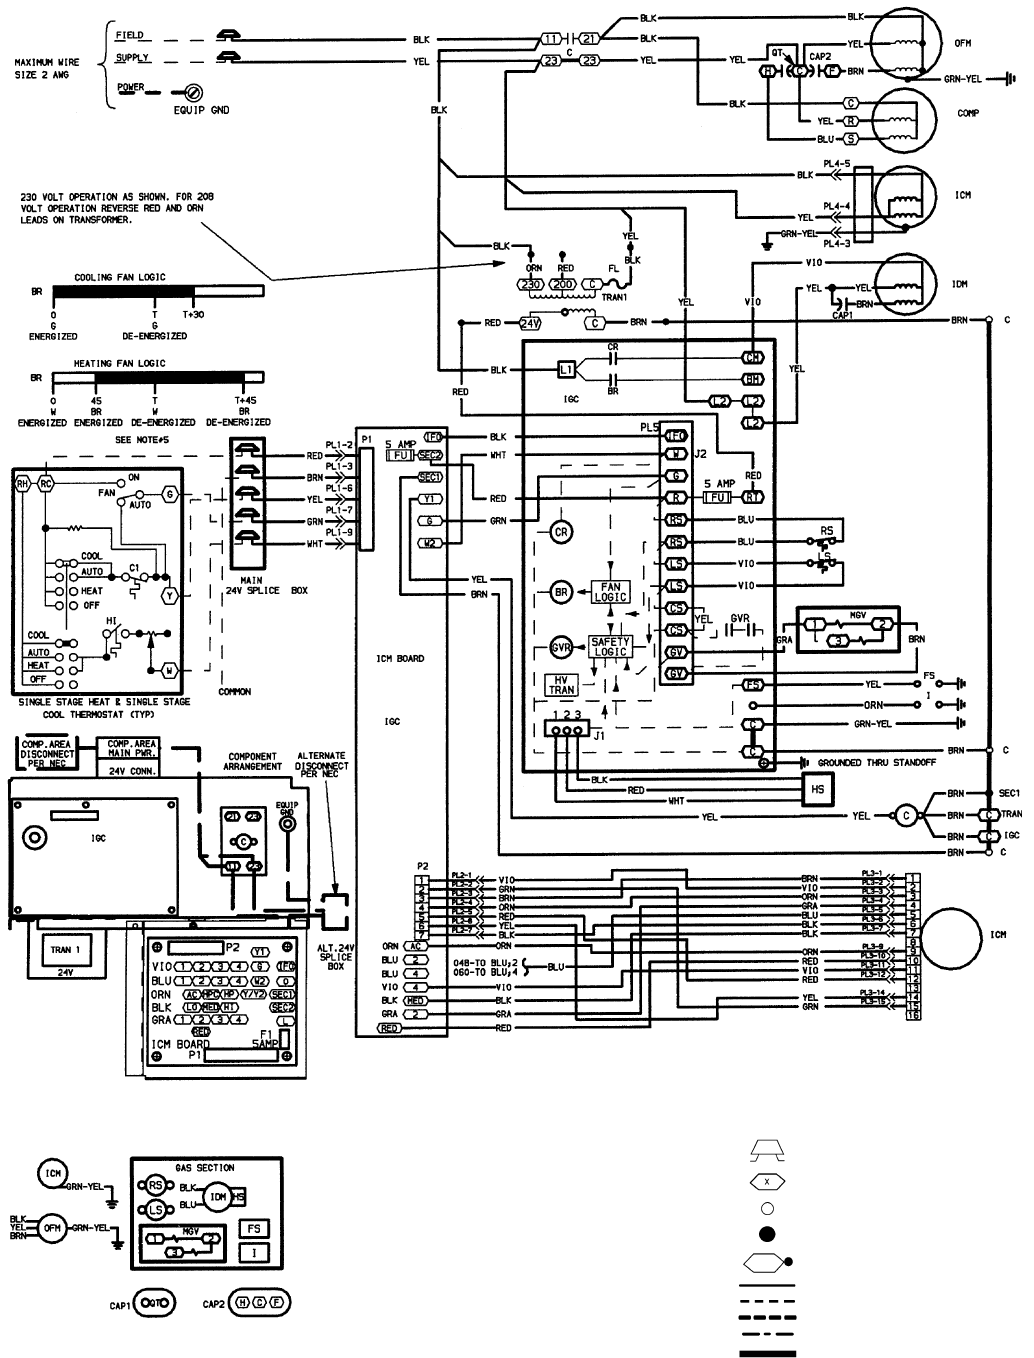 dayton motor wiring diagram 110 220  u2022 wiring and engine diagram